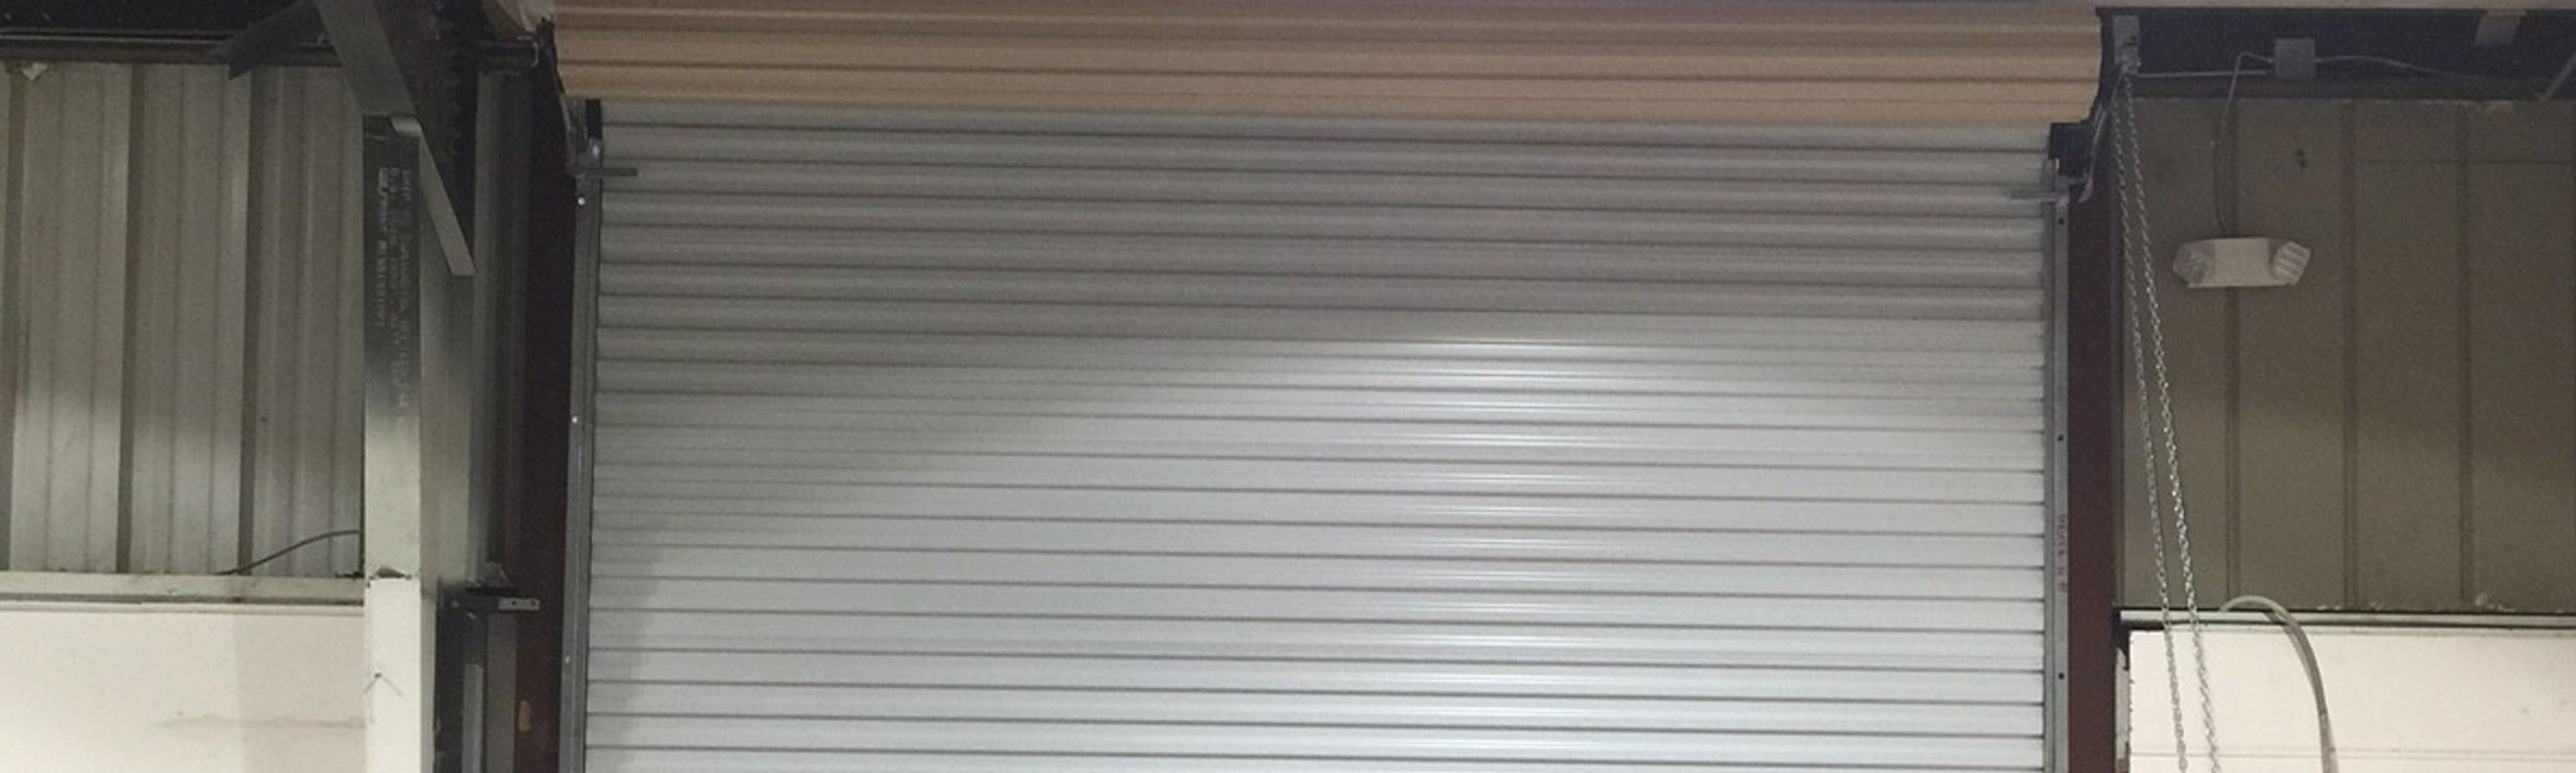 shutter rolling nmlmtiirshco garage control automatic product remote aluminum door china roller electrical